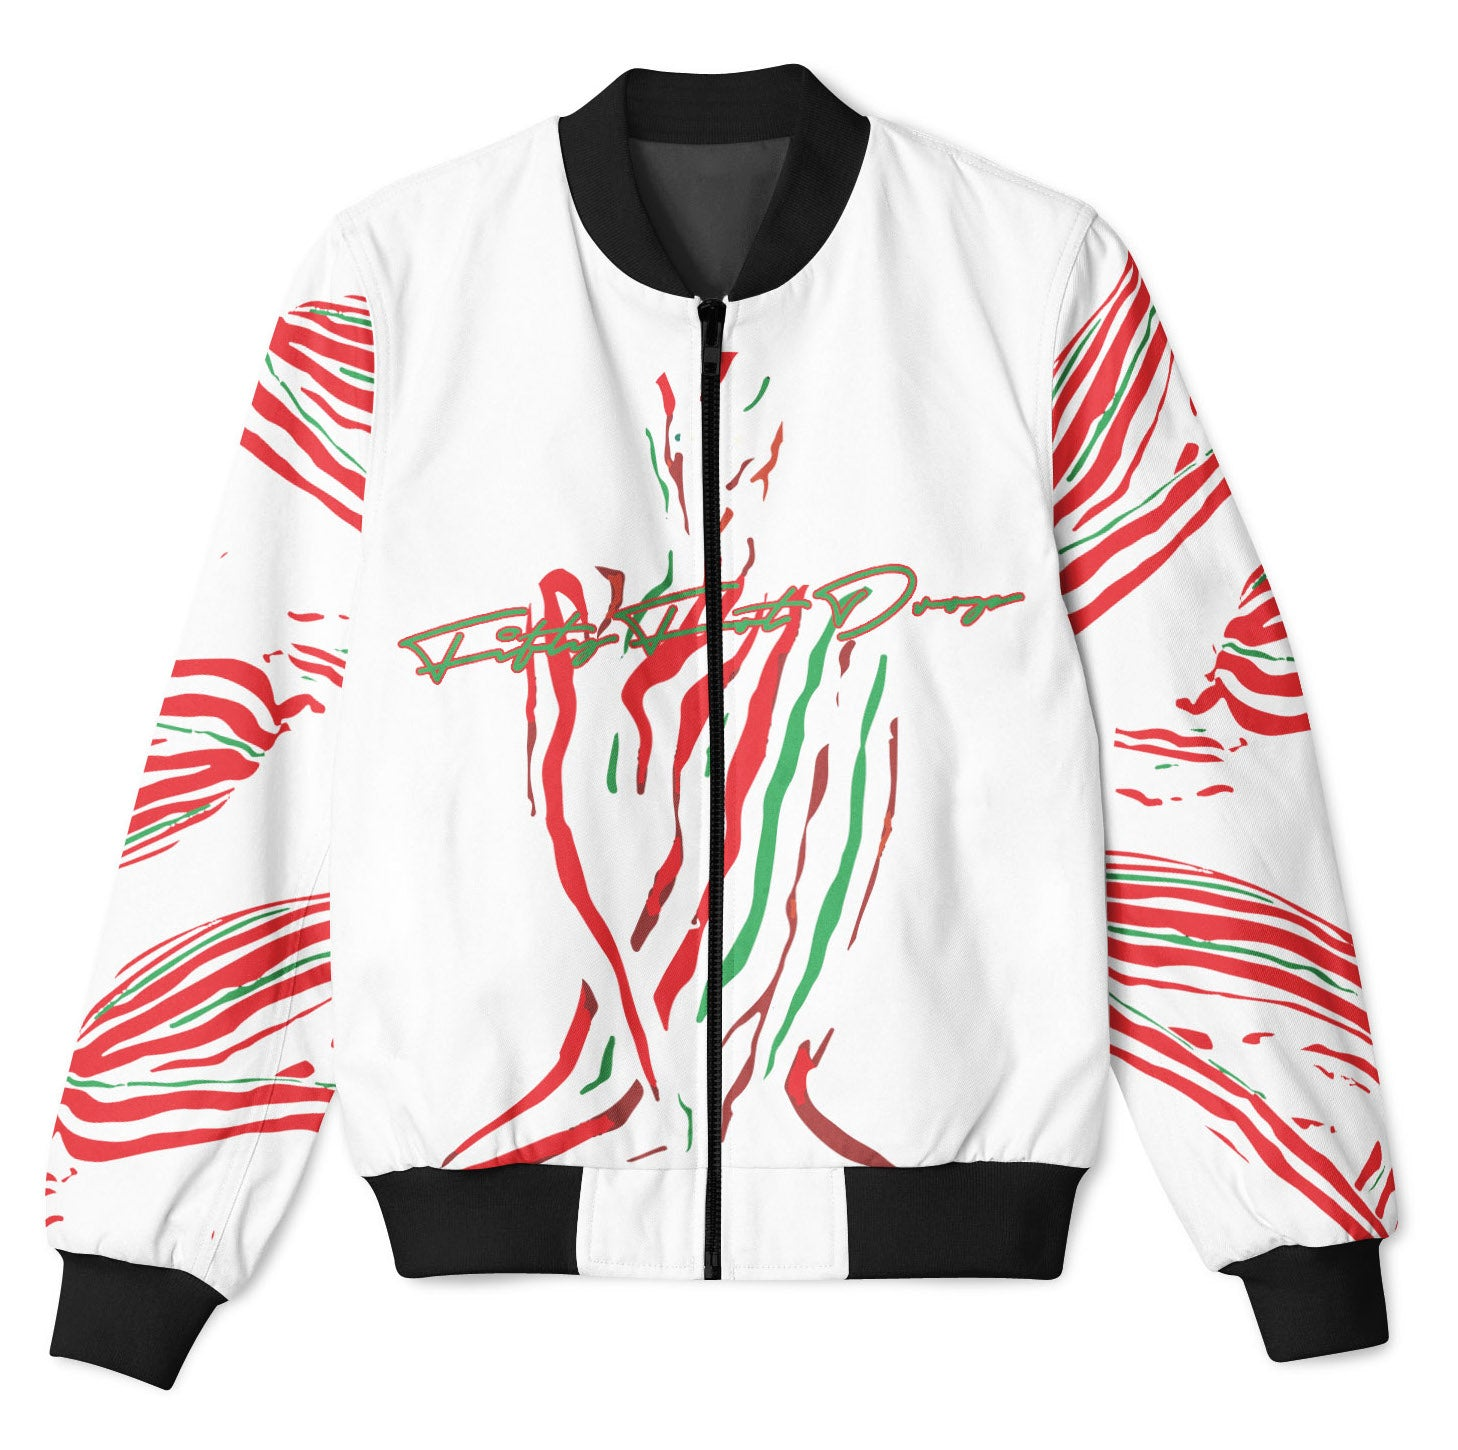 ATCQ WHITE - FIFTY FOOT DROP - BOMBER JACKET  Fifty Foot Drop  fresh-on-road.myshopify.com Fifty Foot Drop